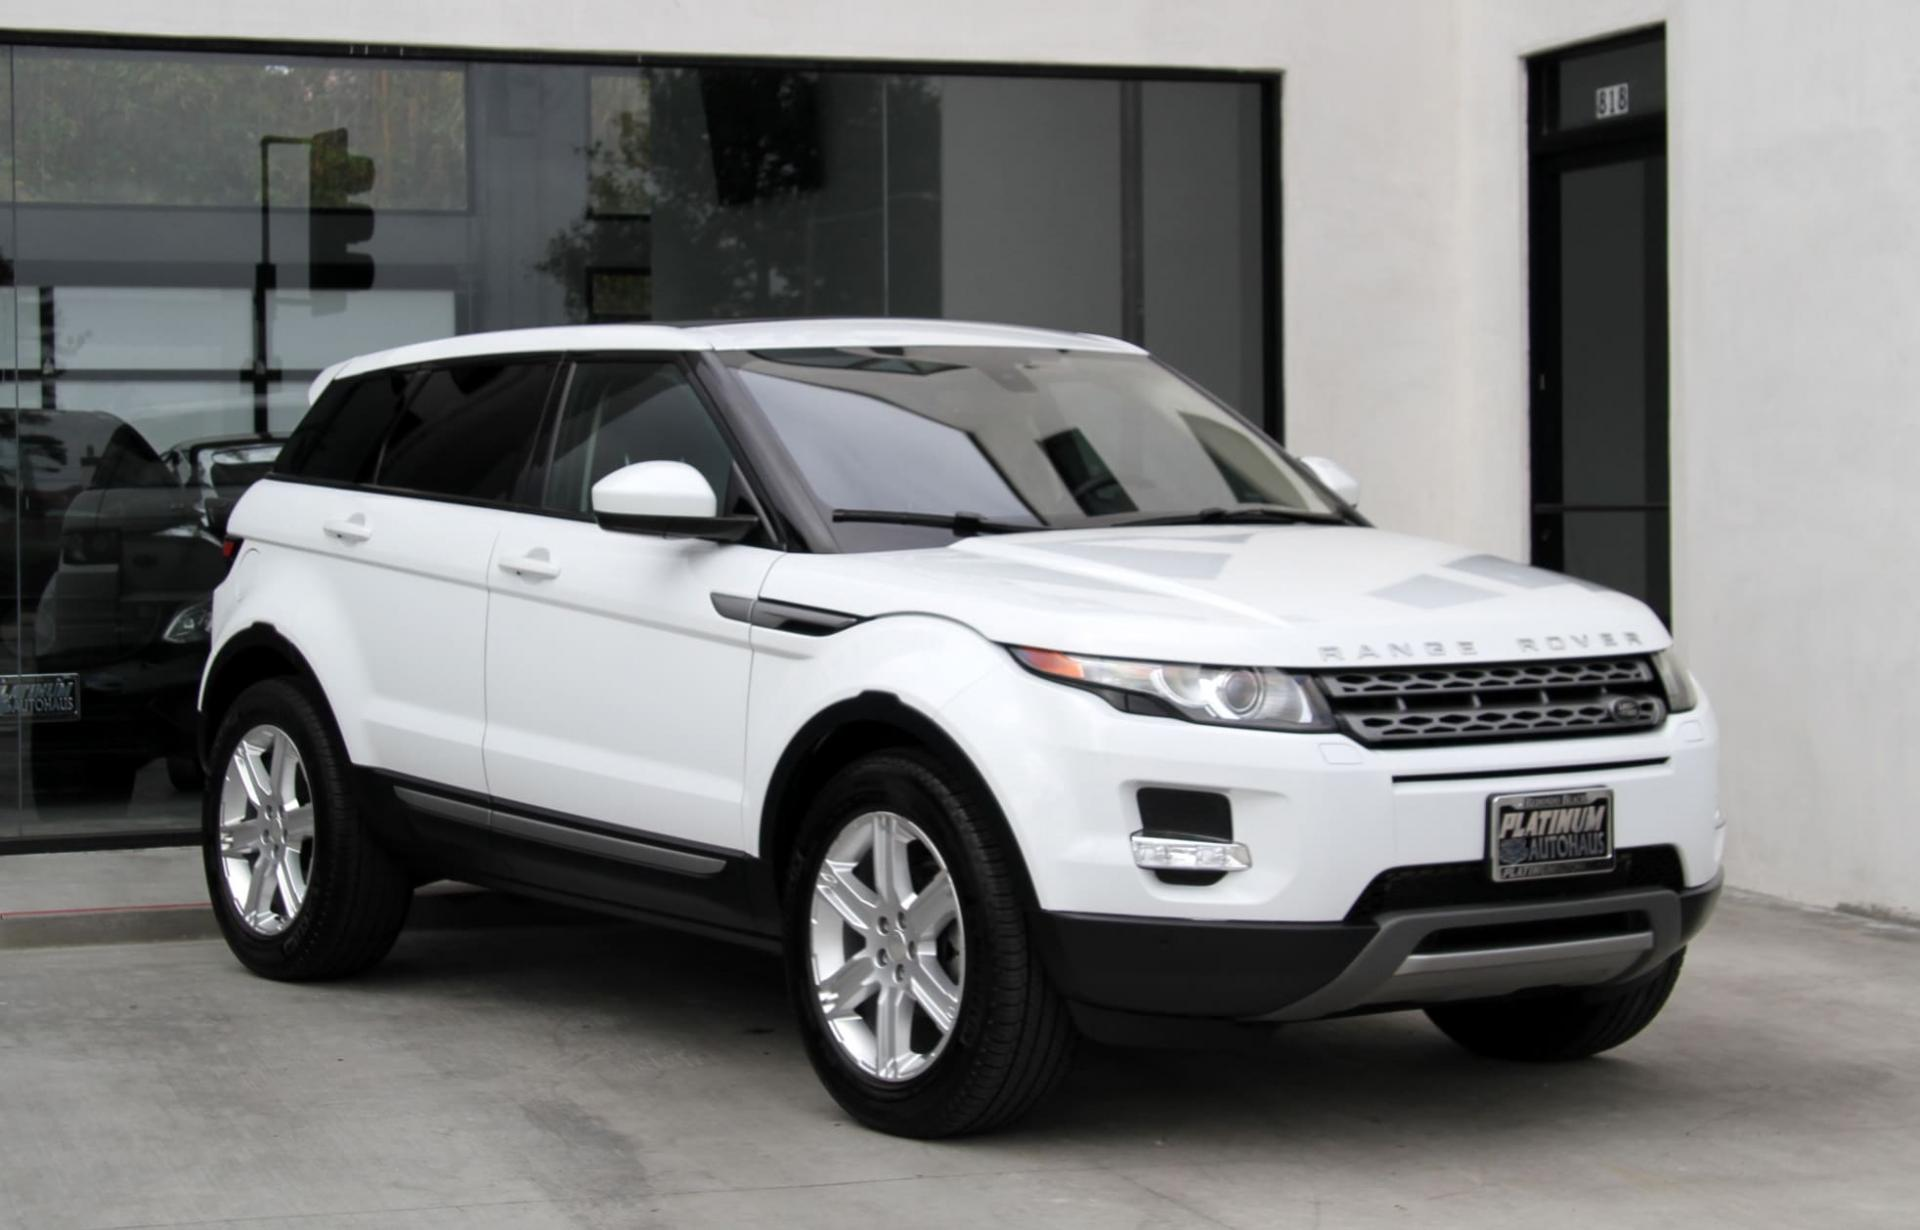 for landrover excellence rover saugus plus sale newandusedcars range land pure auto ma evoque door group cars used